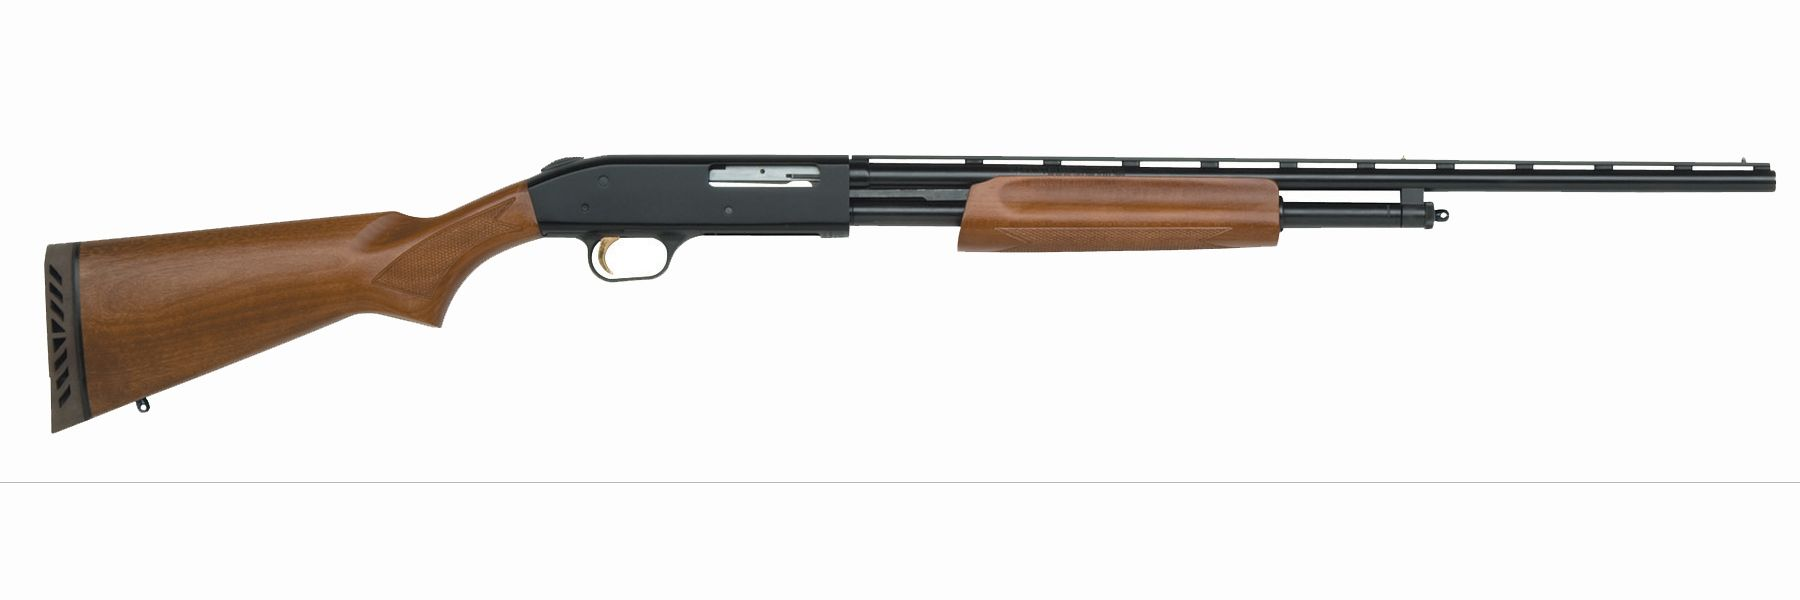 Mossberg 500 shotgun with wood furniture, right profile